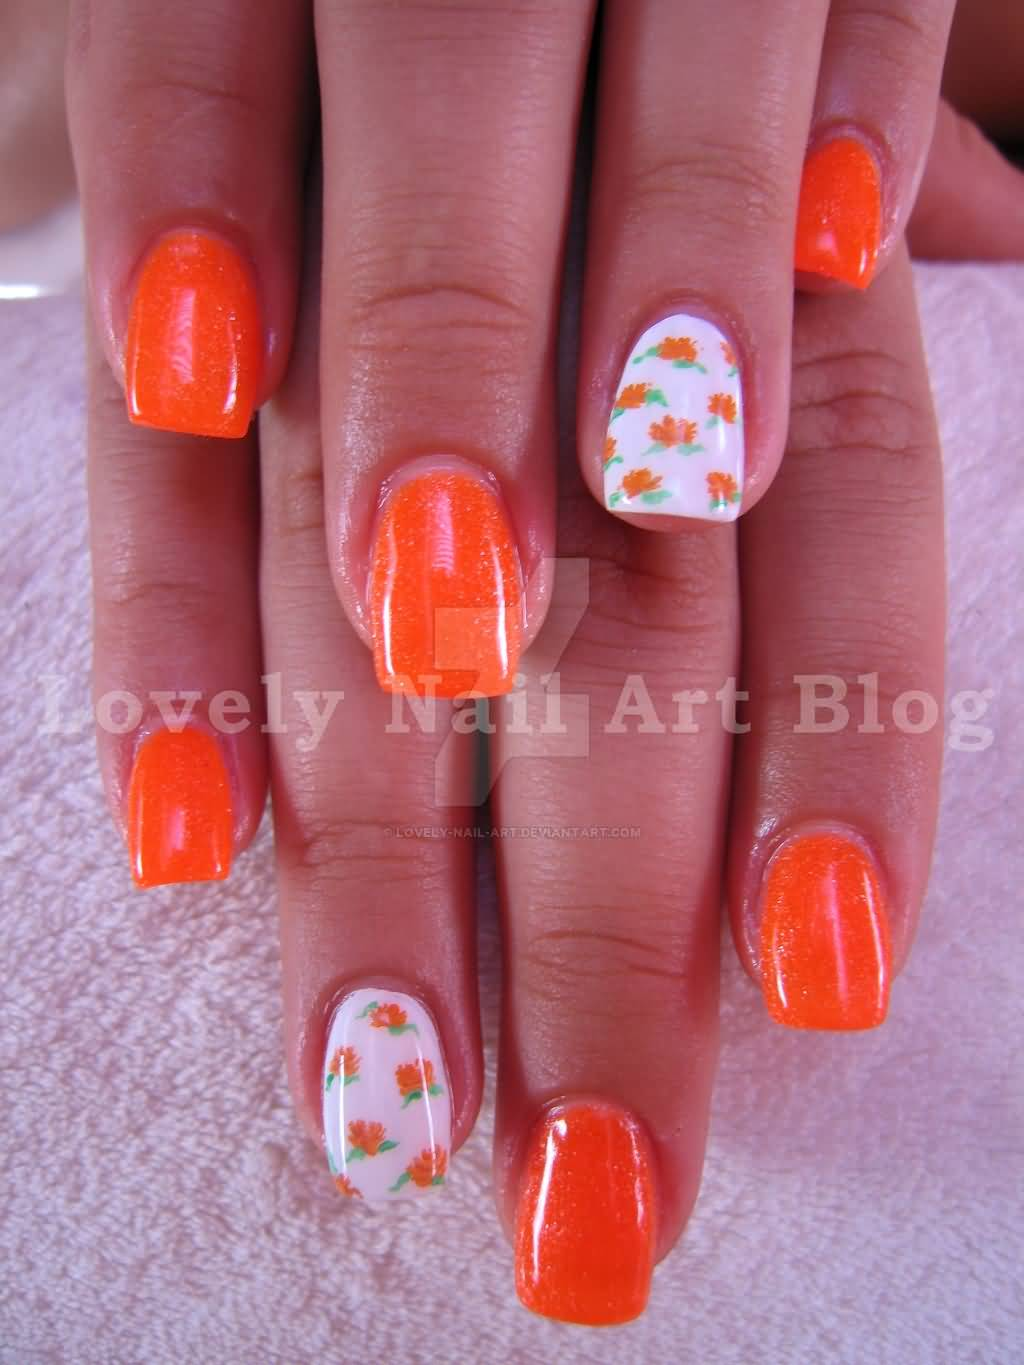 55 most beautiful orange nail art design ideas neon orange flowers on white nail art design prinsesfo Image collections